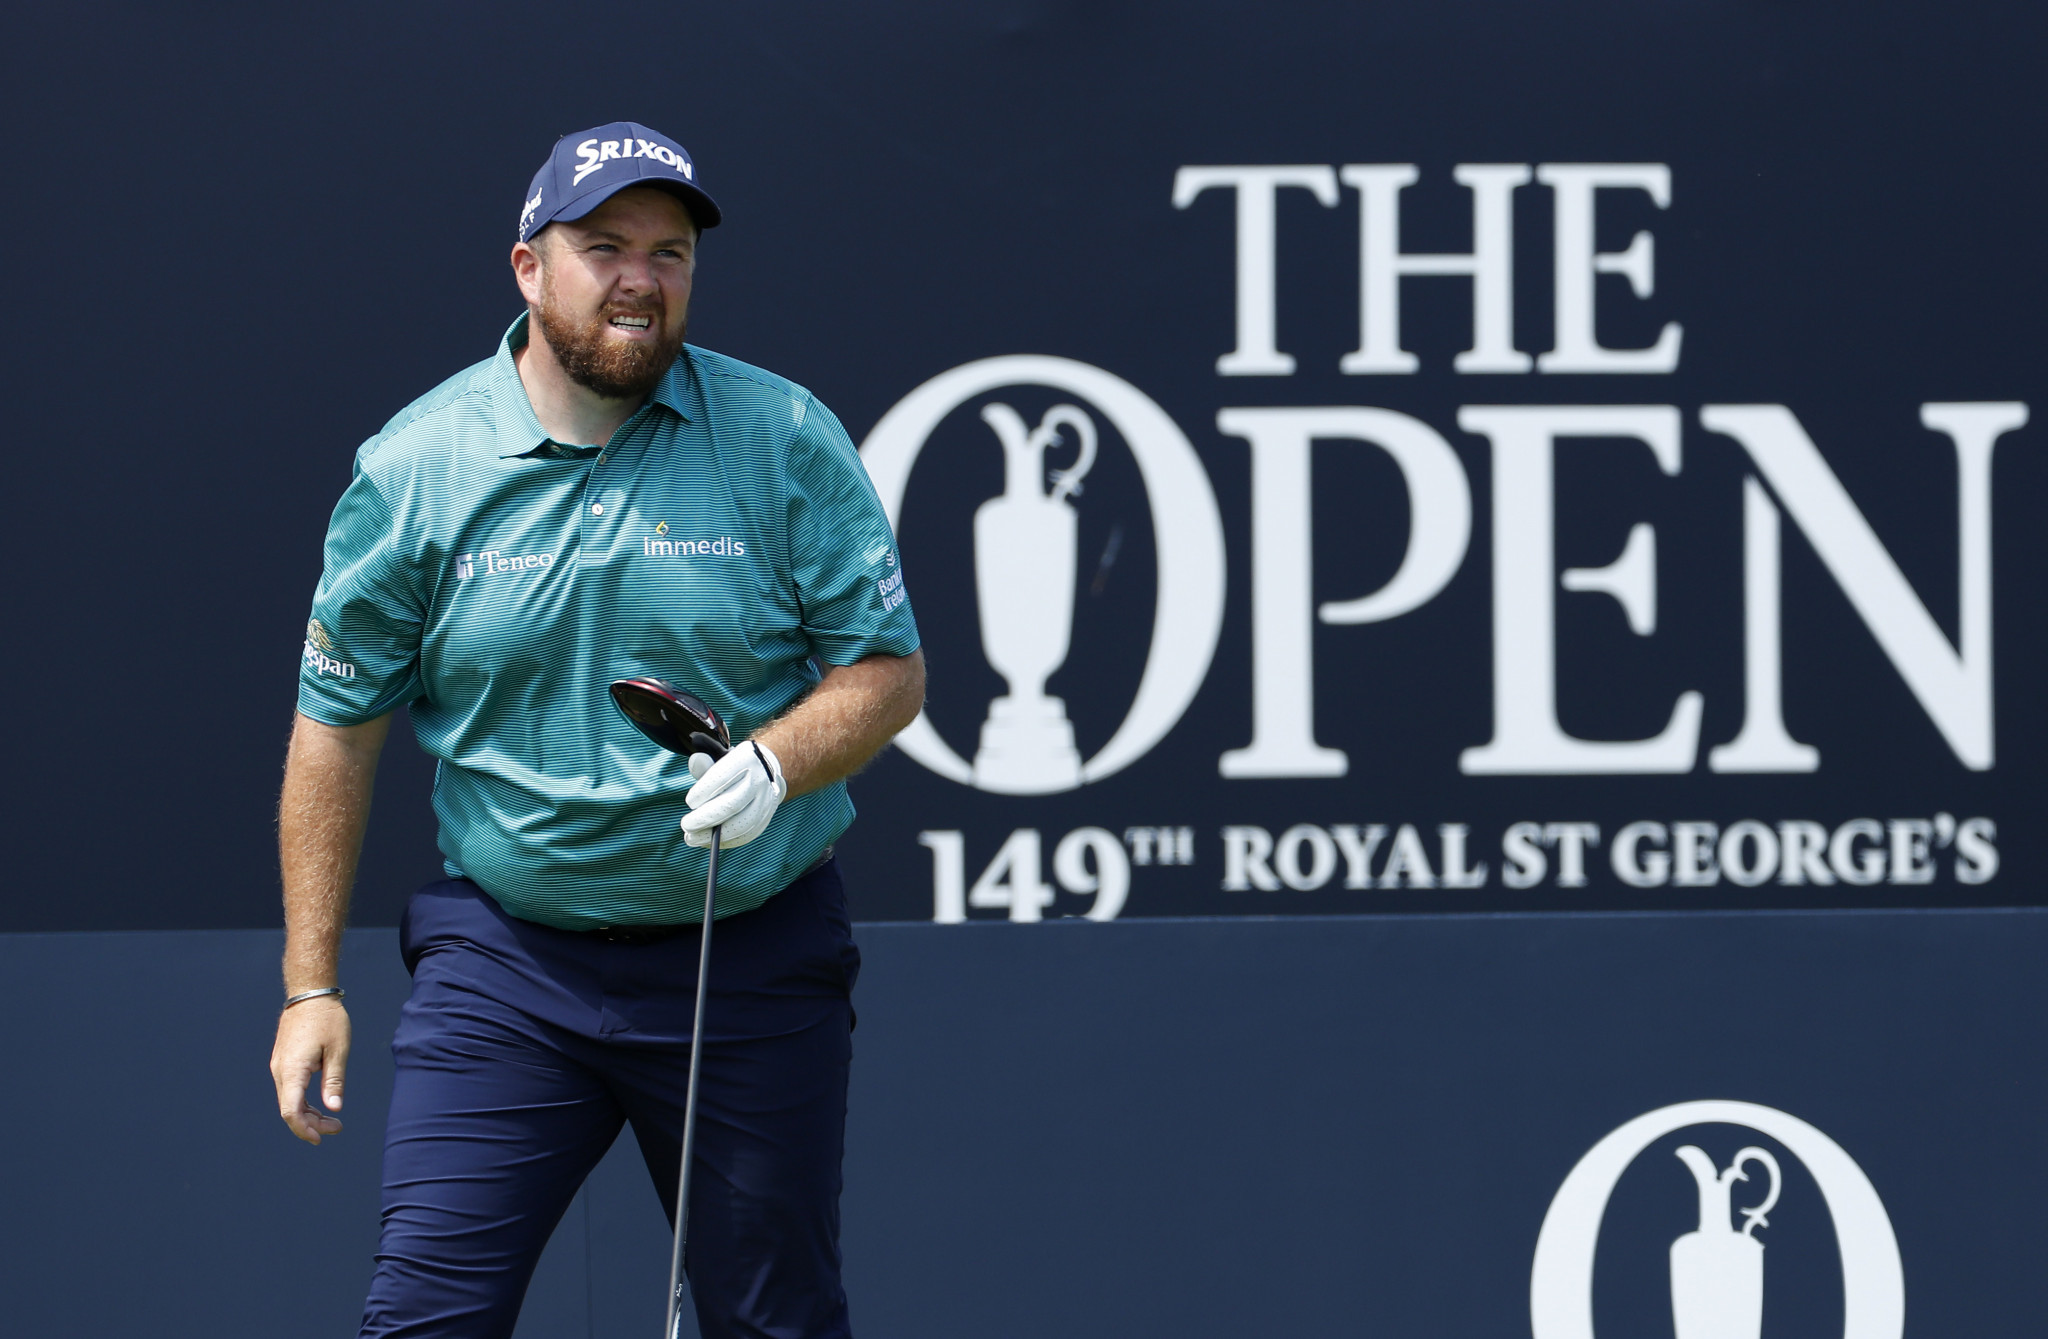 Lowry, Mickelson and McIlroy among 11 past Open winners playing in British major's return